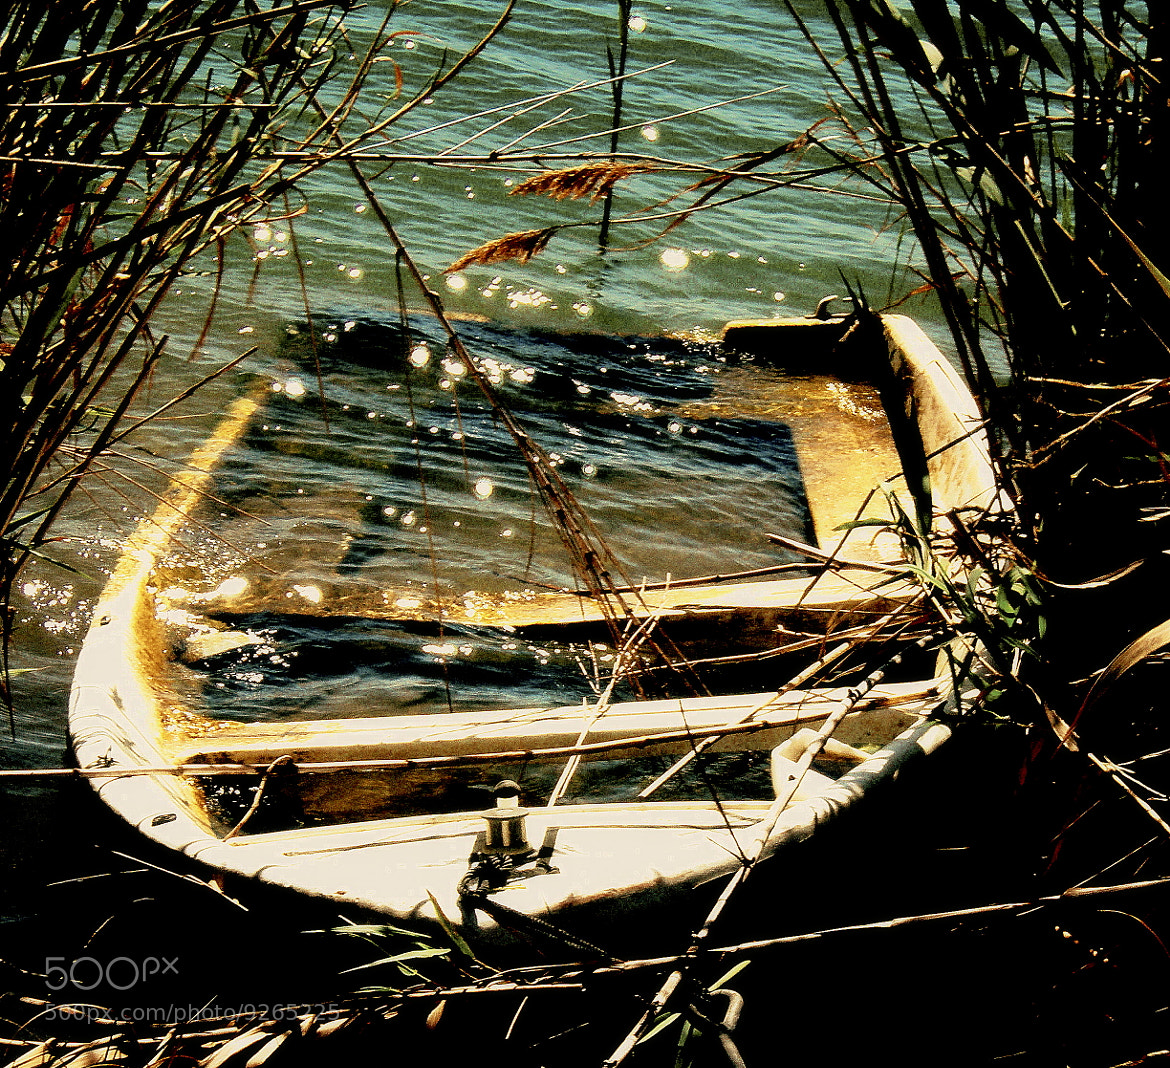 Photograph the sunken boat by Raquel Camurasiquel on 500px